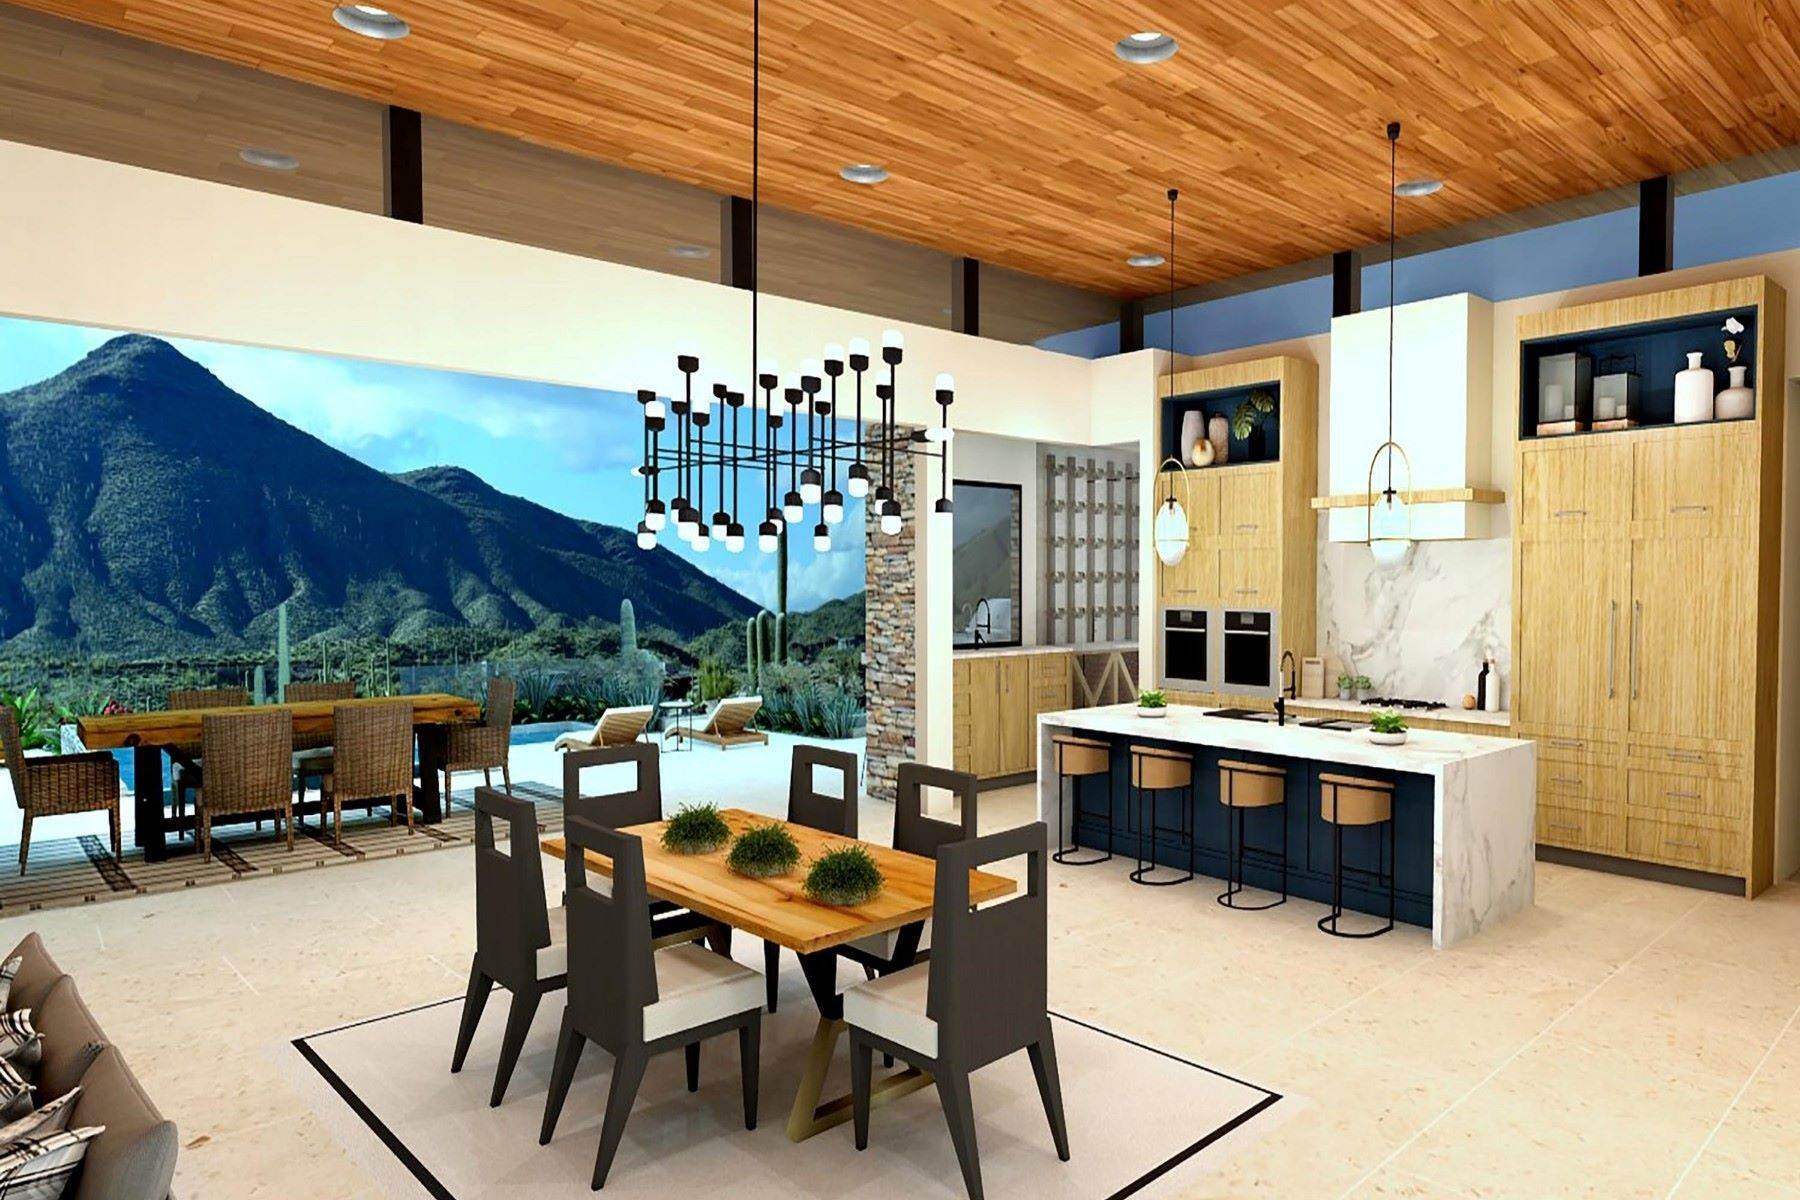 Single Family Homes for Sale at Saguaro Forest 127 9680 E Tear Drop Cove Lane Scottsdale, Arizona 85262 United States